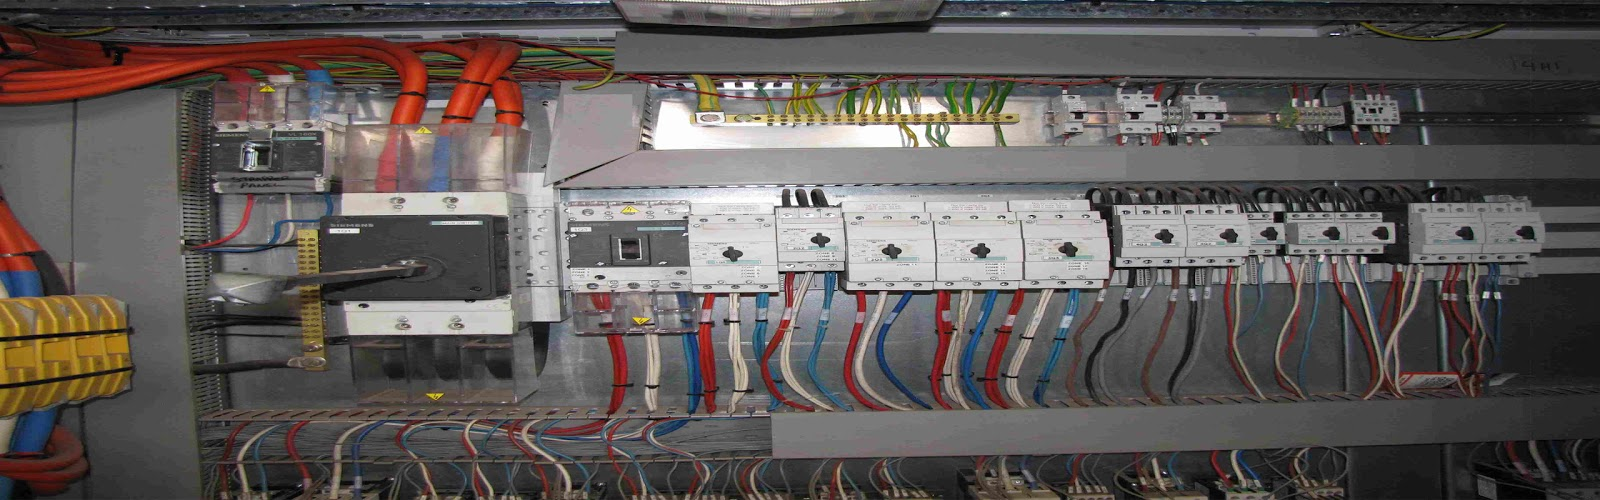 Commercial Electrical Wiring Hems Industries Pvt Ltd Machinery Renders Its Clients With Comprehensive Solutions For Internal And External Services These Comprise Installation